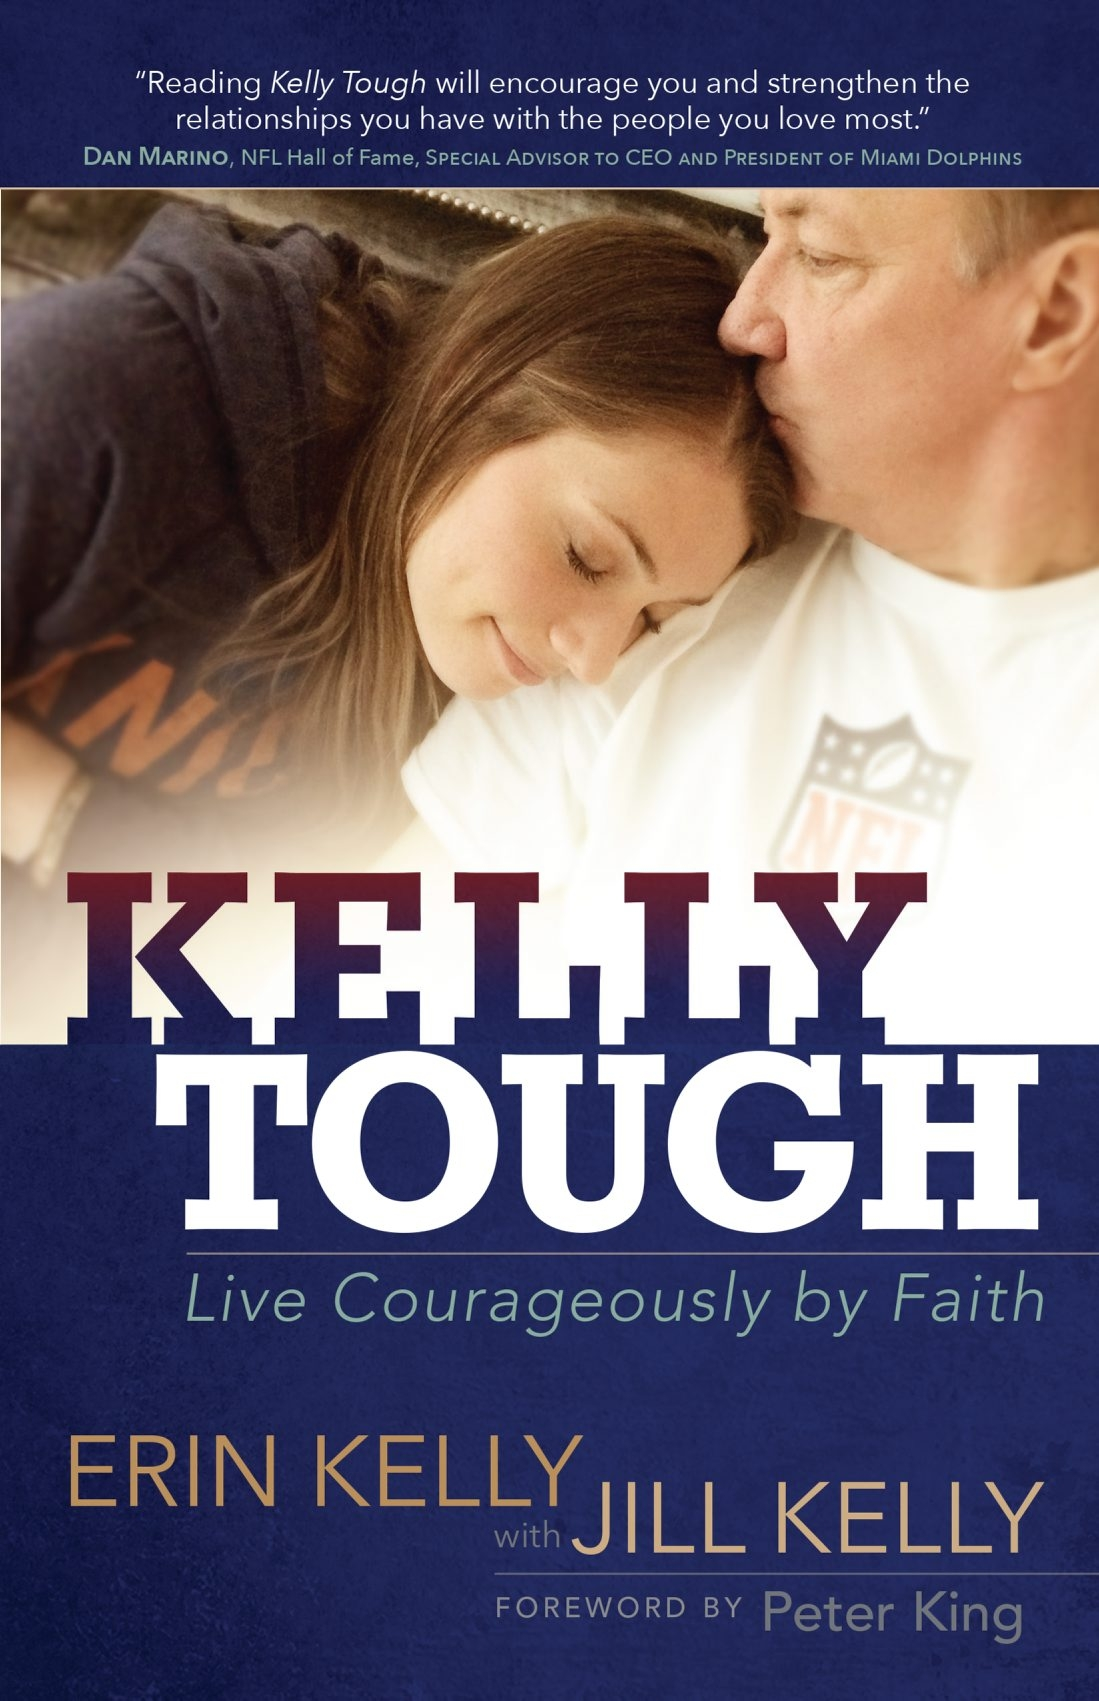 Jim Kelly came to the realization that it's not about being tough at all.